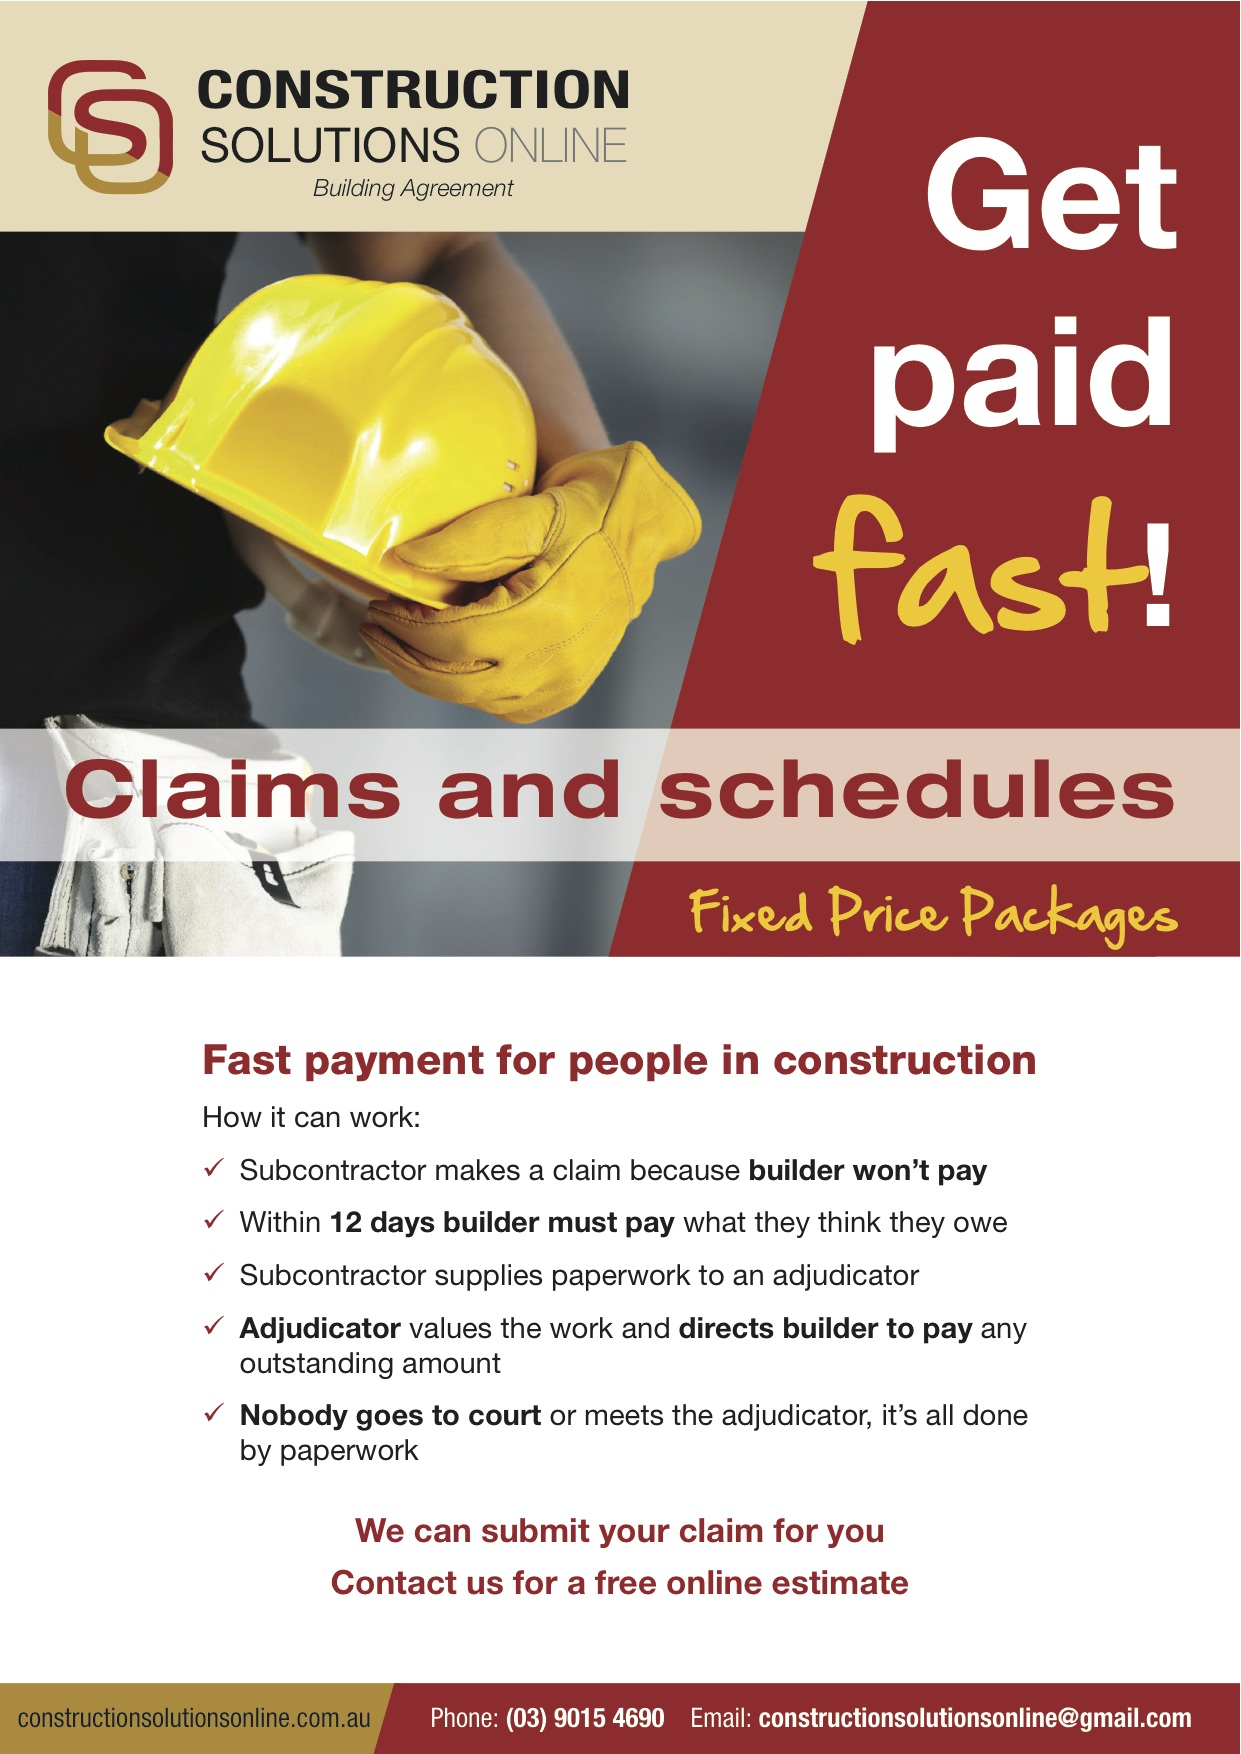 Construction Services Flyer : Owner hasn t paid my securityofpaymentsact sop